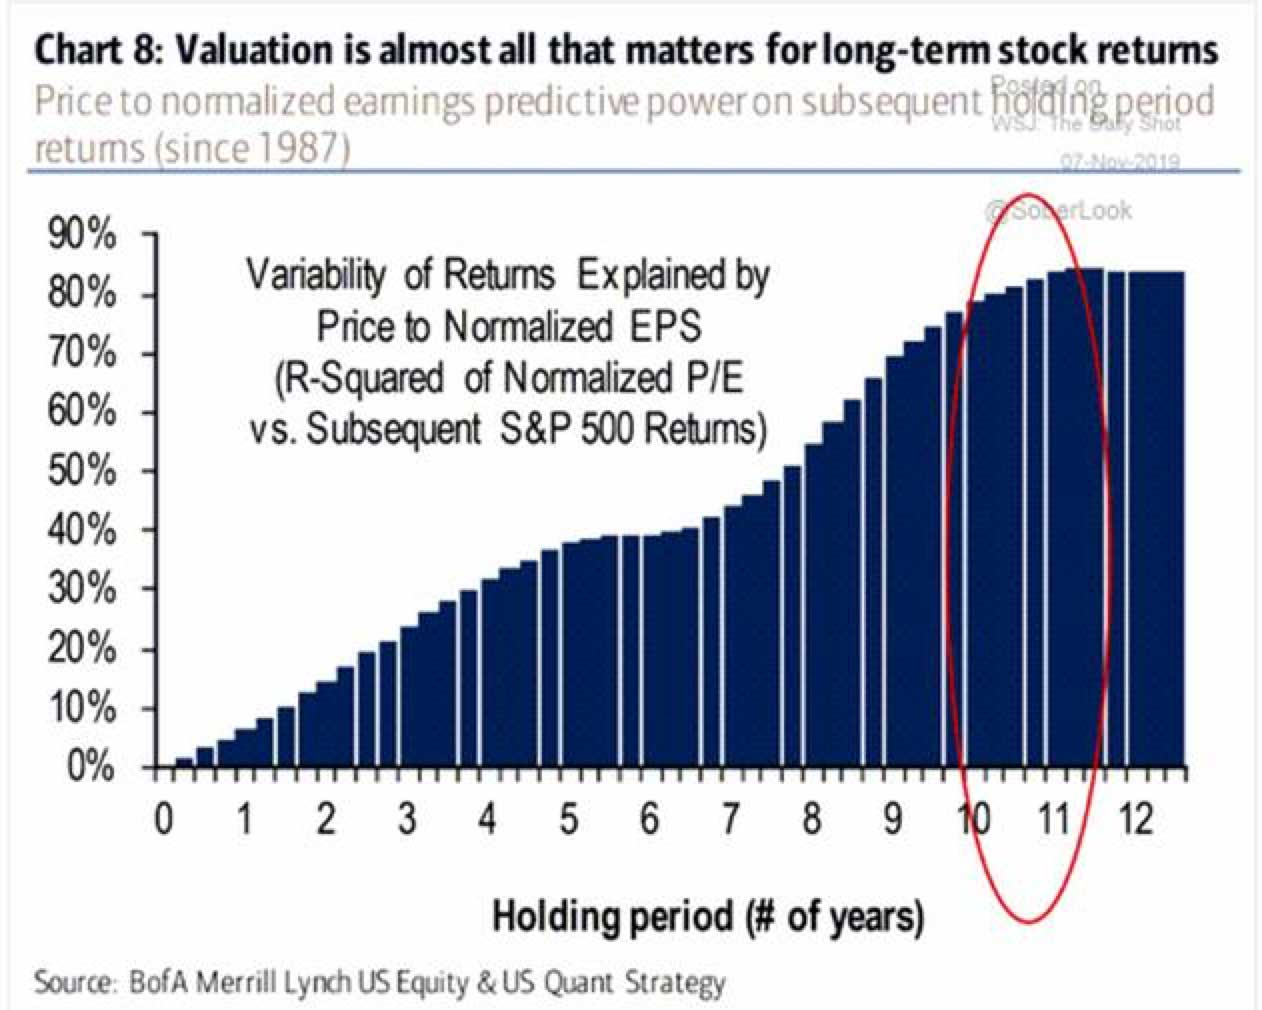 The Relationship Between Valuation and Returns